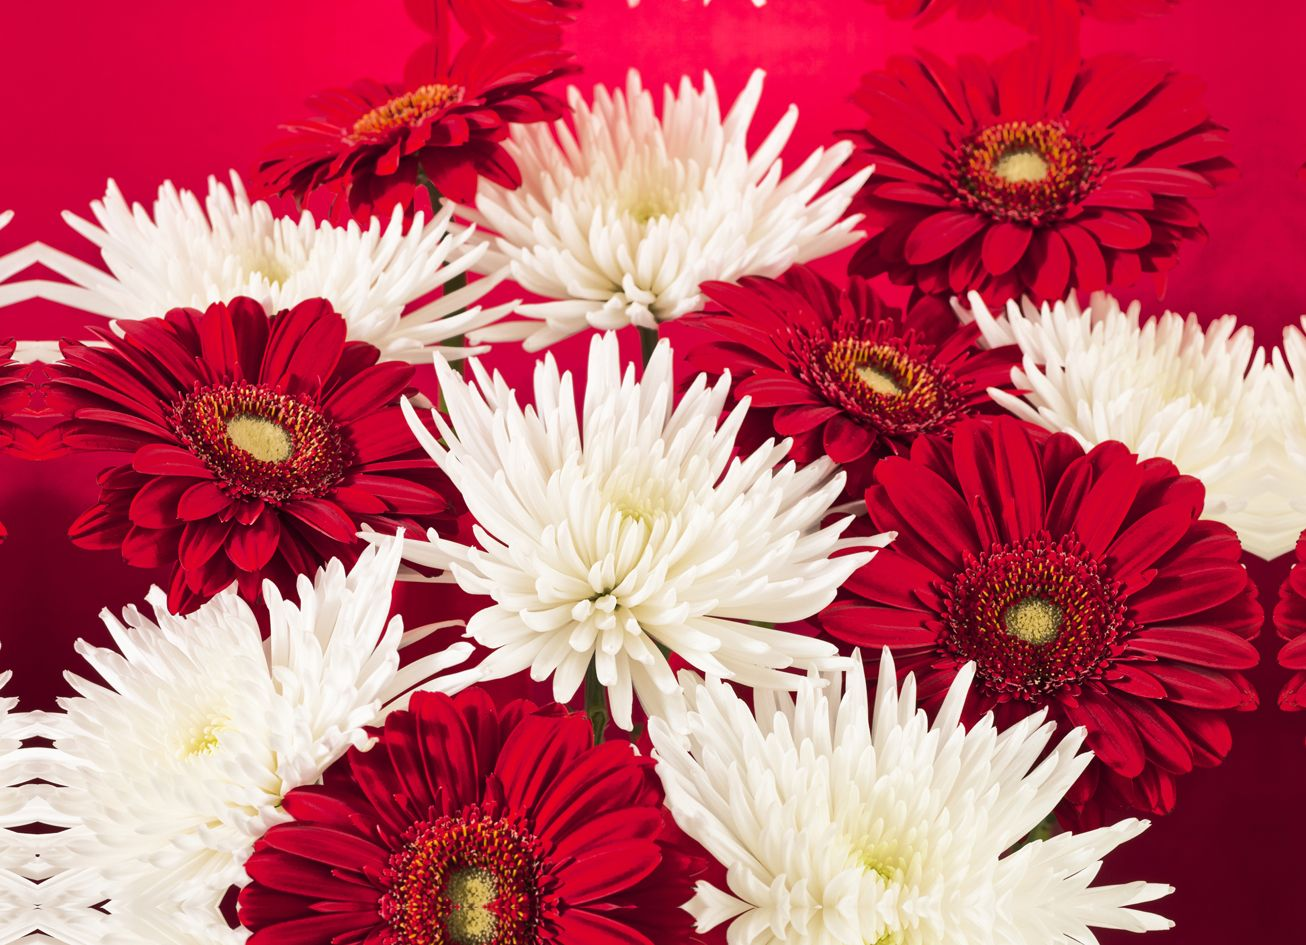 Unusual white chrysanthemum flower meaning pictures inspiration red white chrysanthemums triptych by arthouse wallpaper direct izmirmasajfo Choice Image